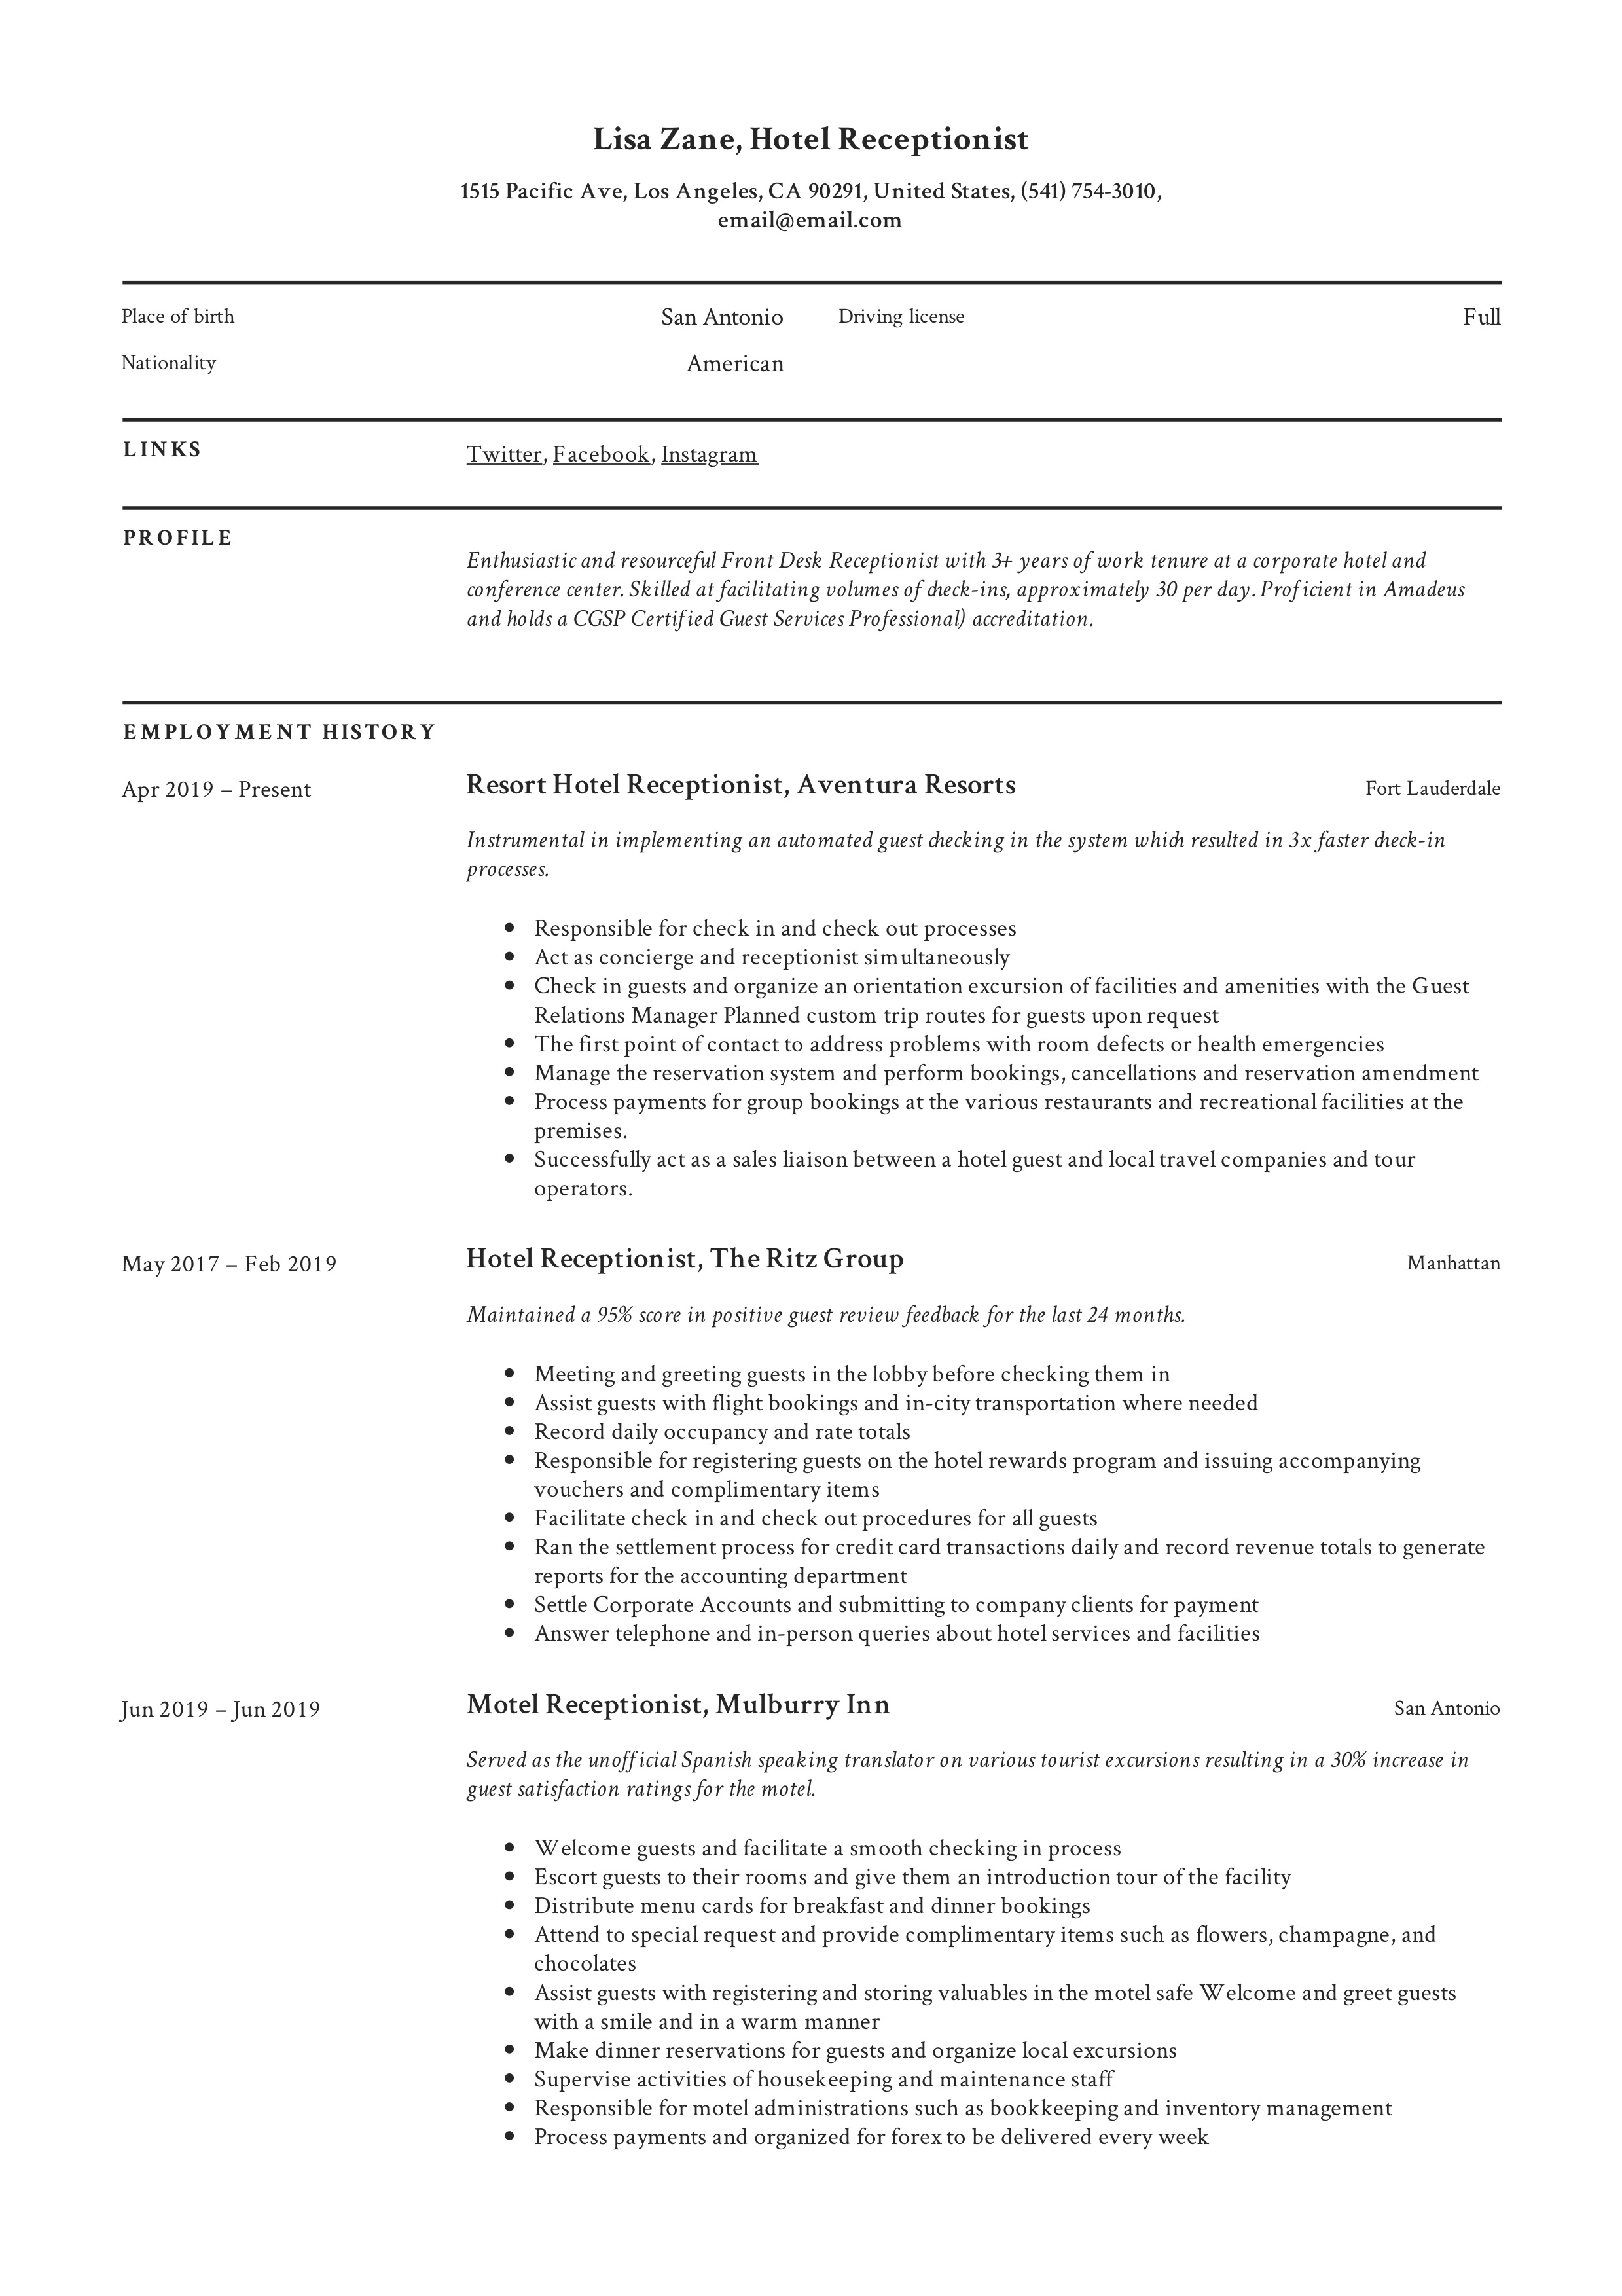 Hotel Receptionist Resume Writing Guide 12 Templates 2020